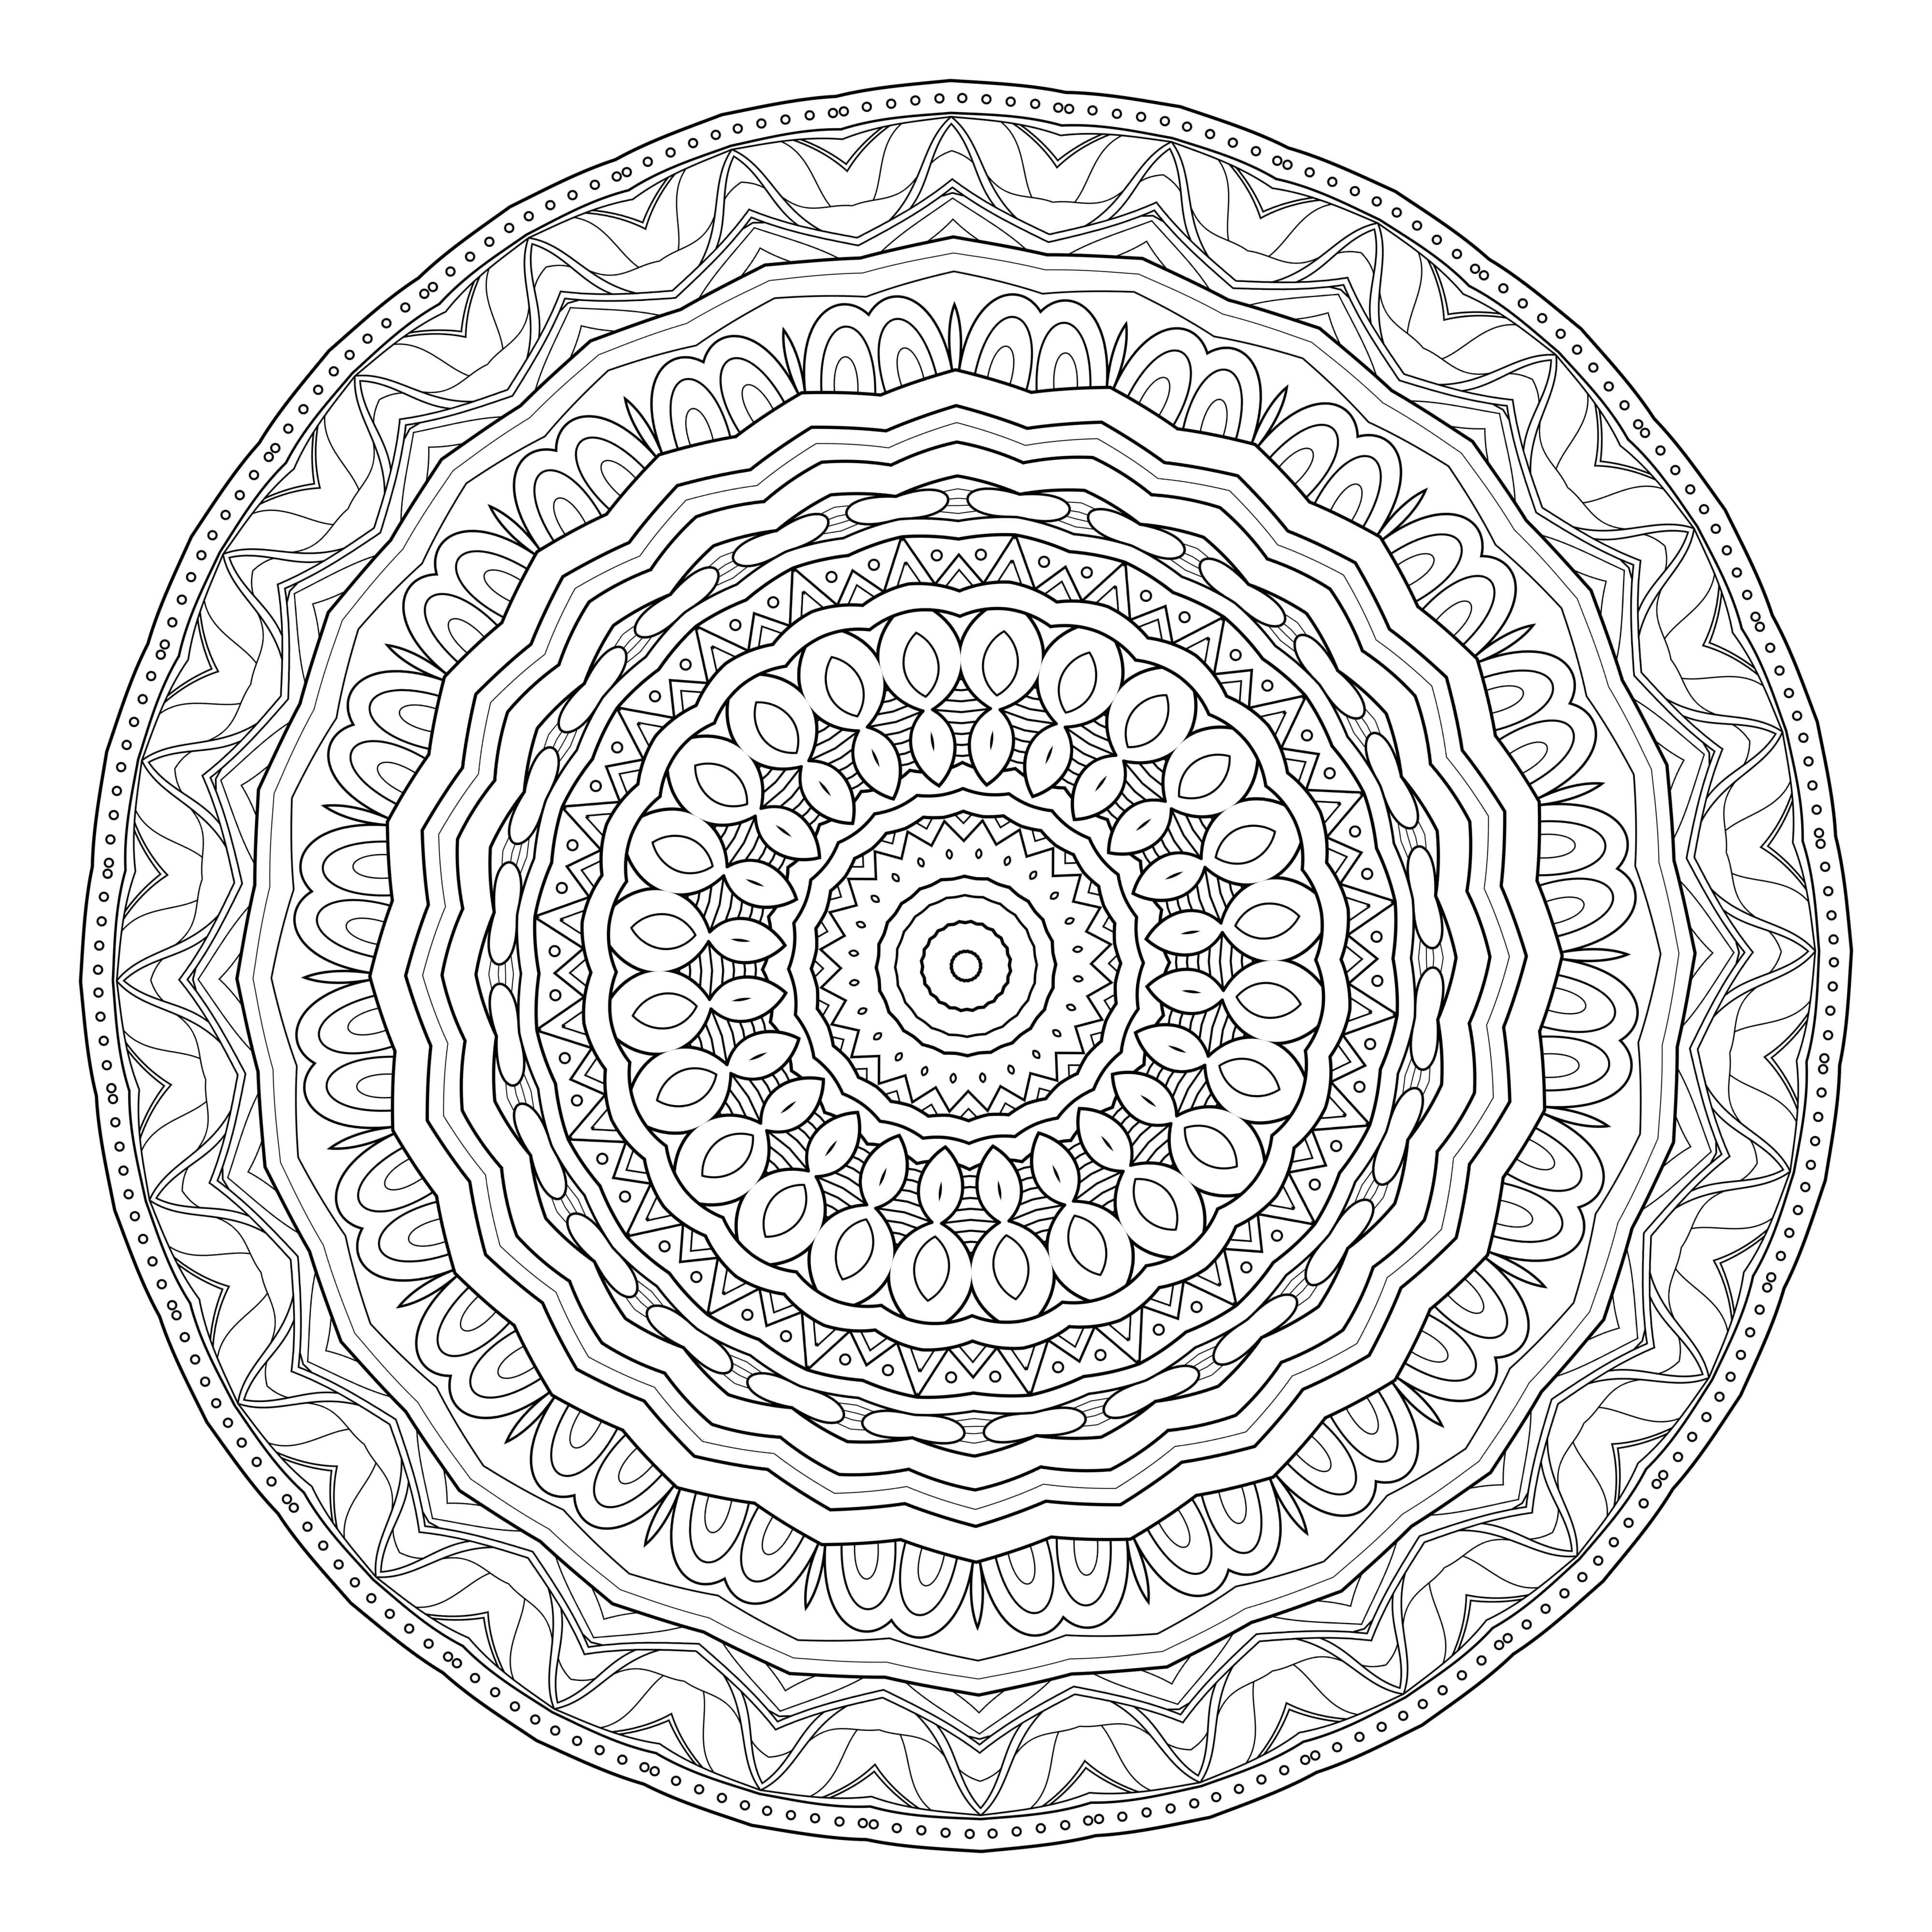 5 free printable coloring pages mandala templates coloring mandala coloring pages. Black Bedroom Furniture Sets. Home Design Ideas